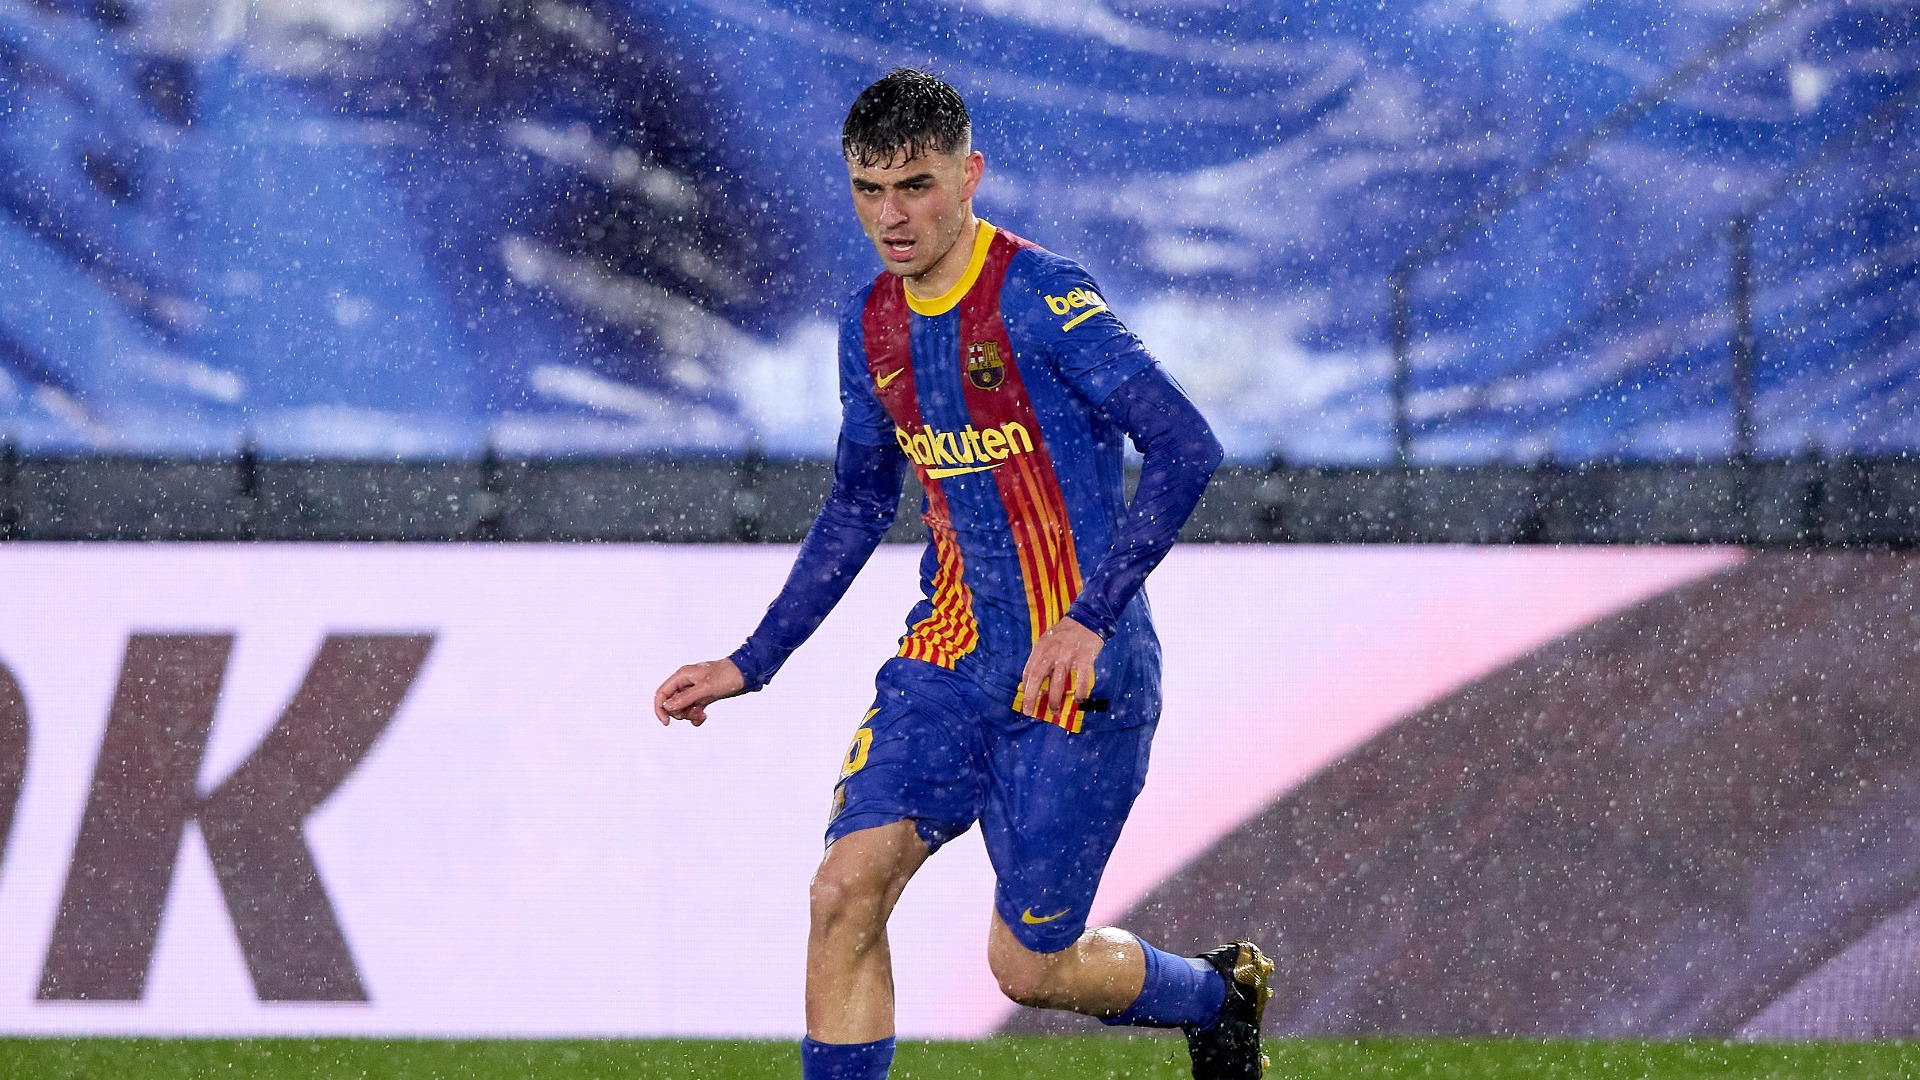 'One-in-a-million' Pedri becoming more than Iniesta's heir at Barca after snow interrupted Real Madrid trial